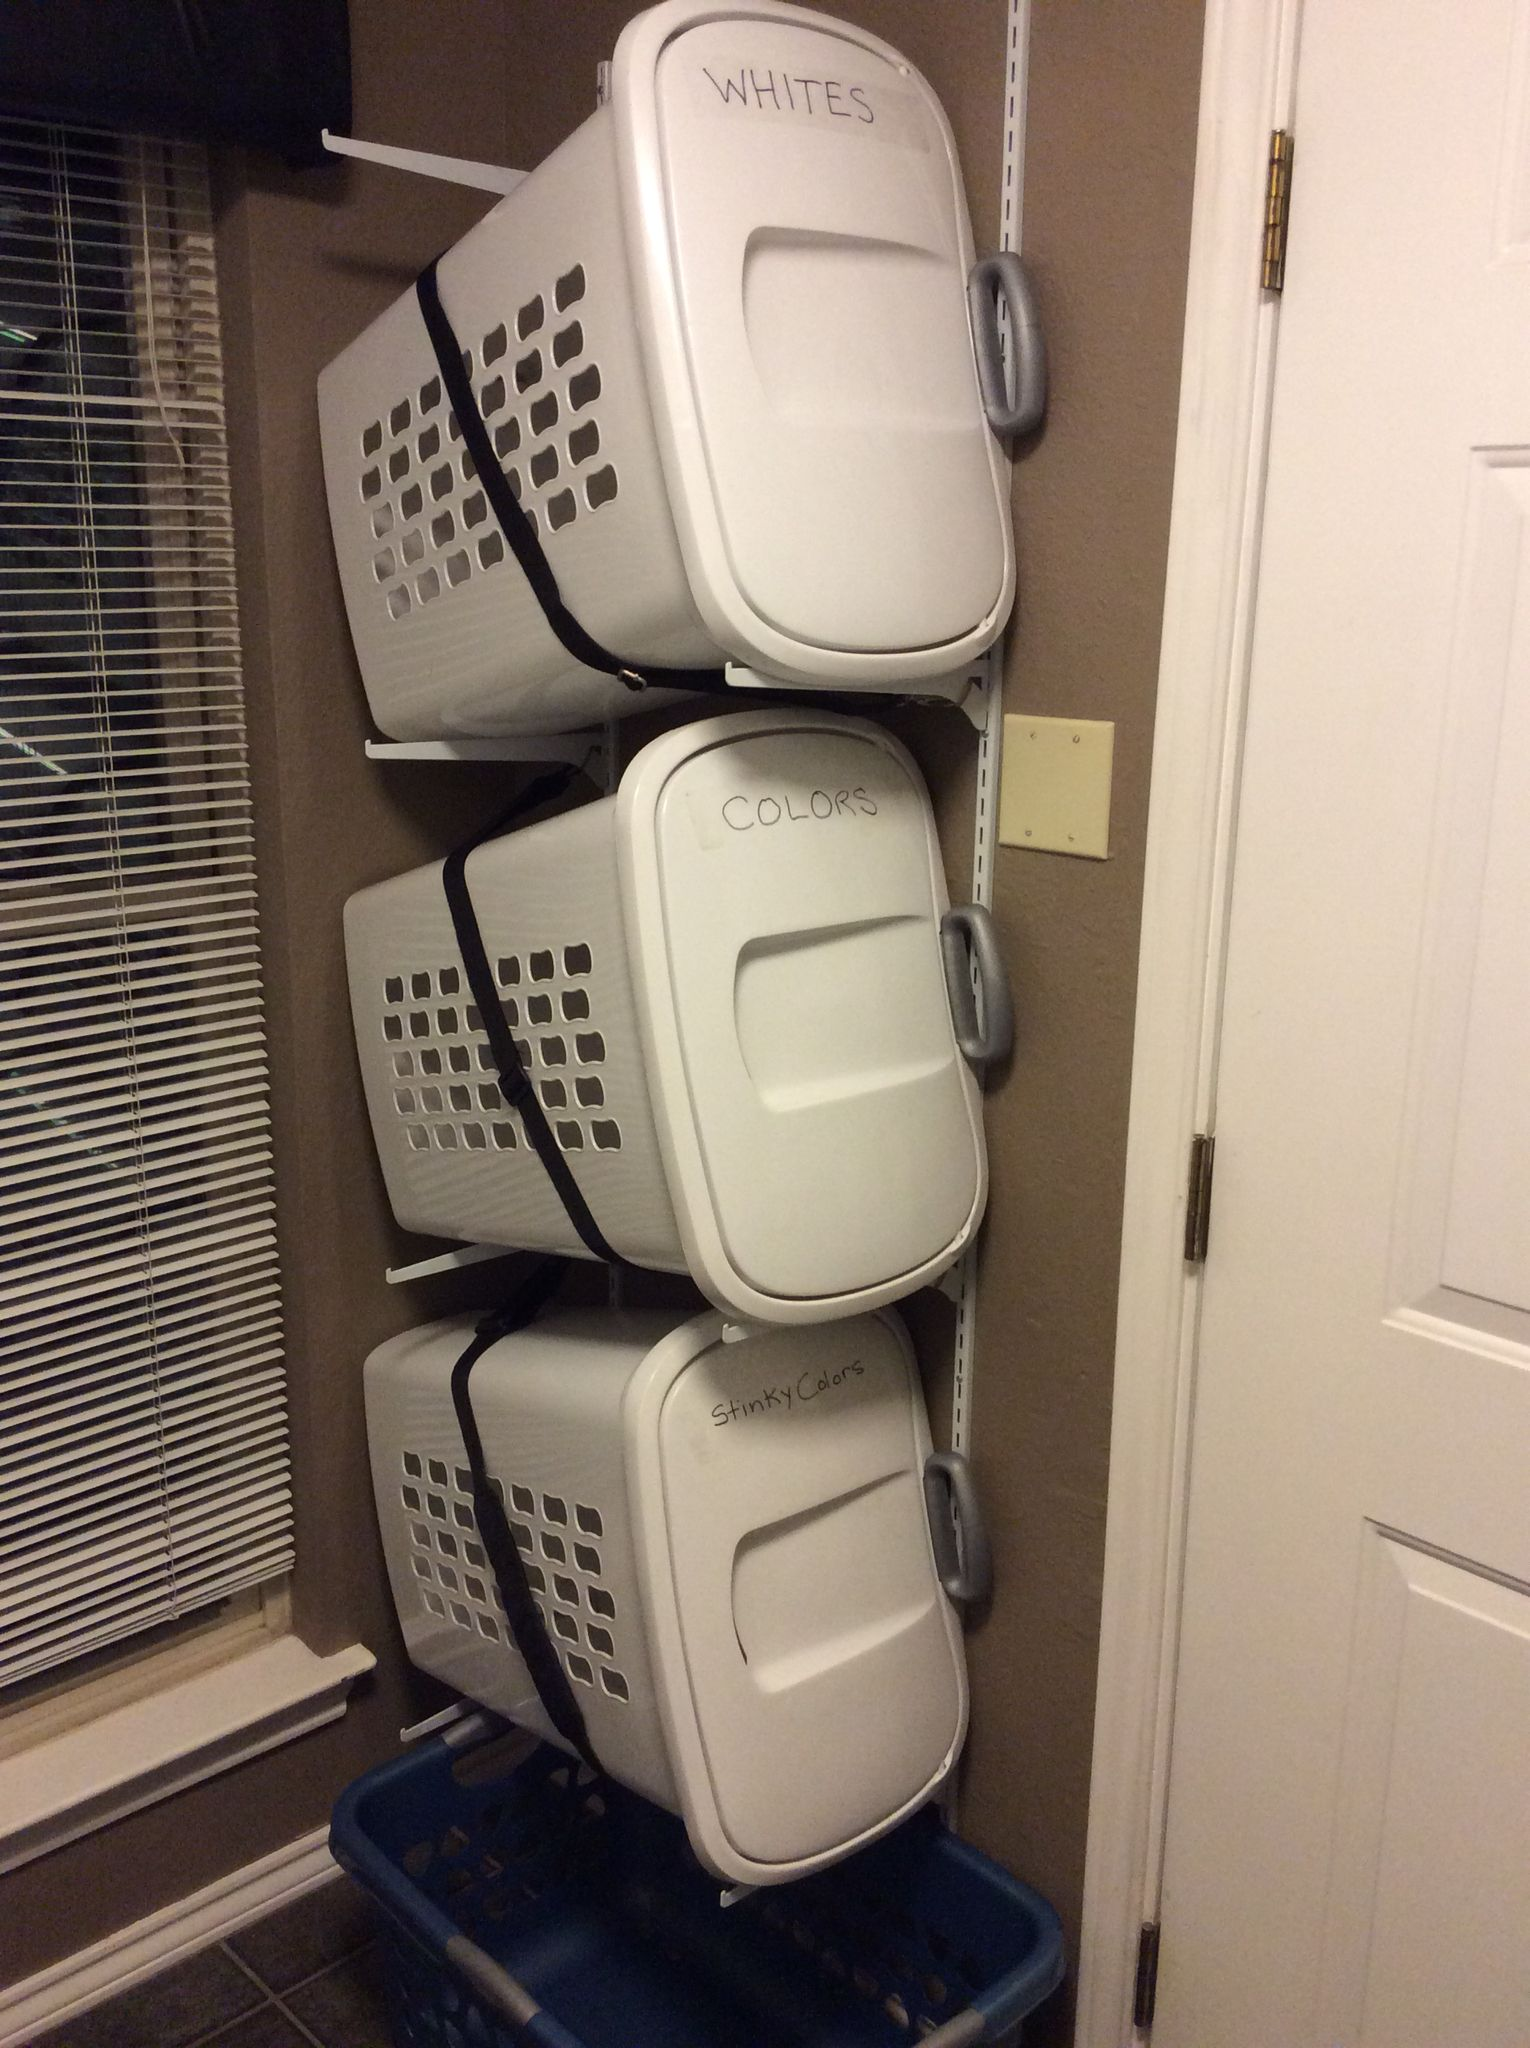 Laundry basket storage on wall